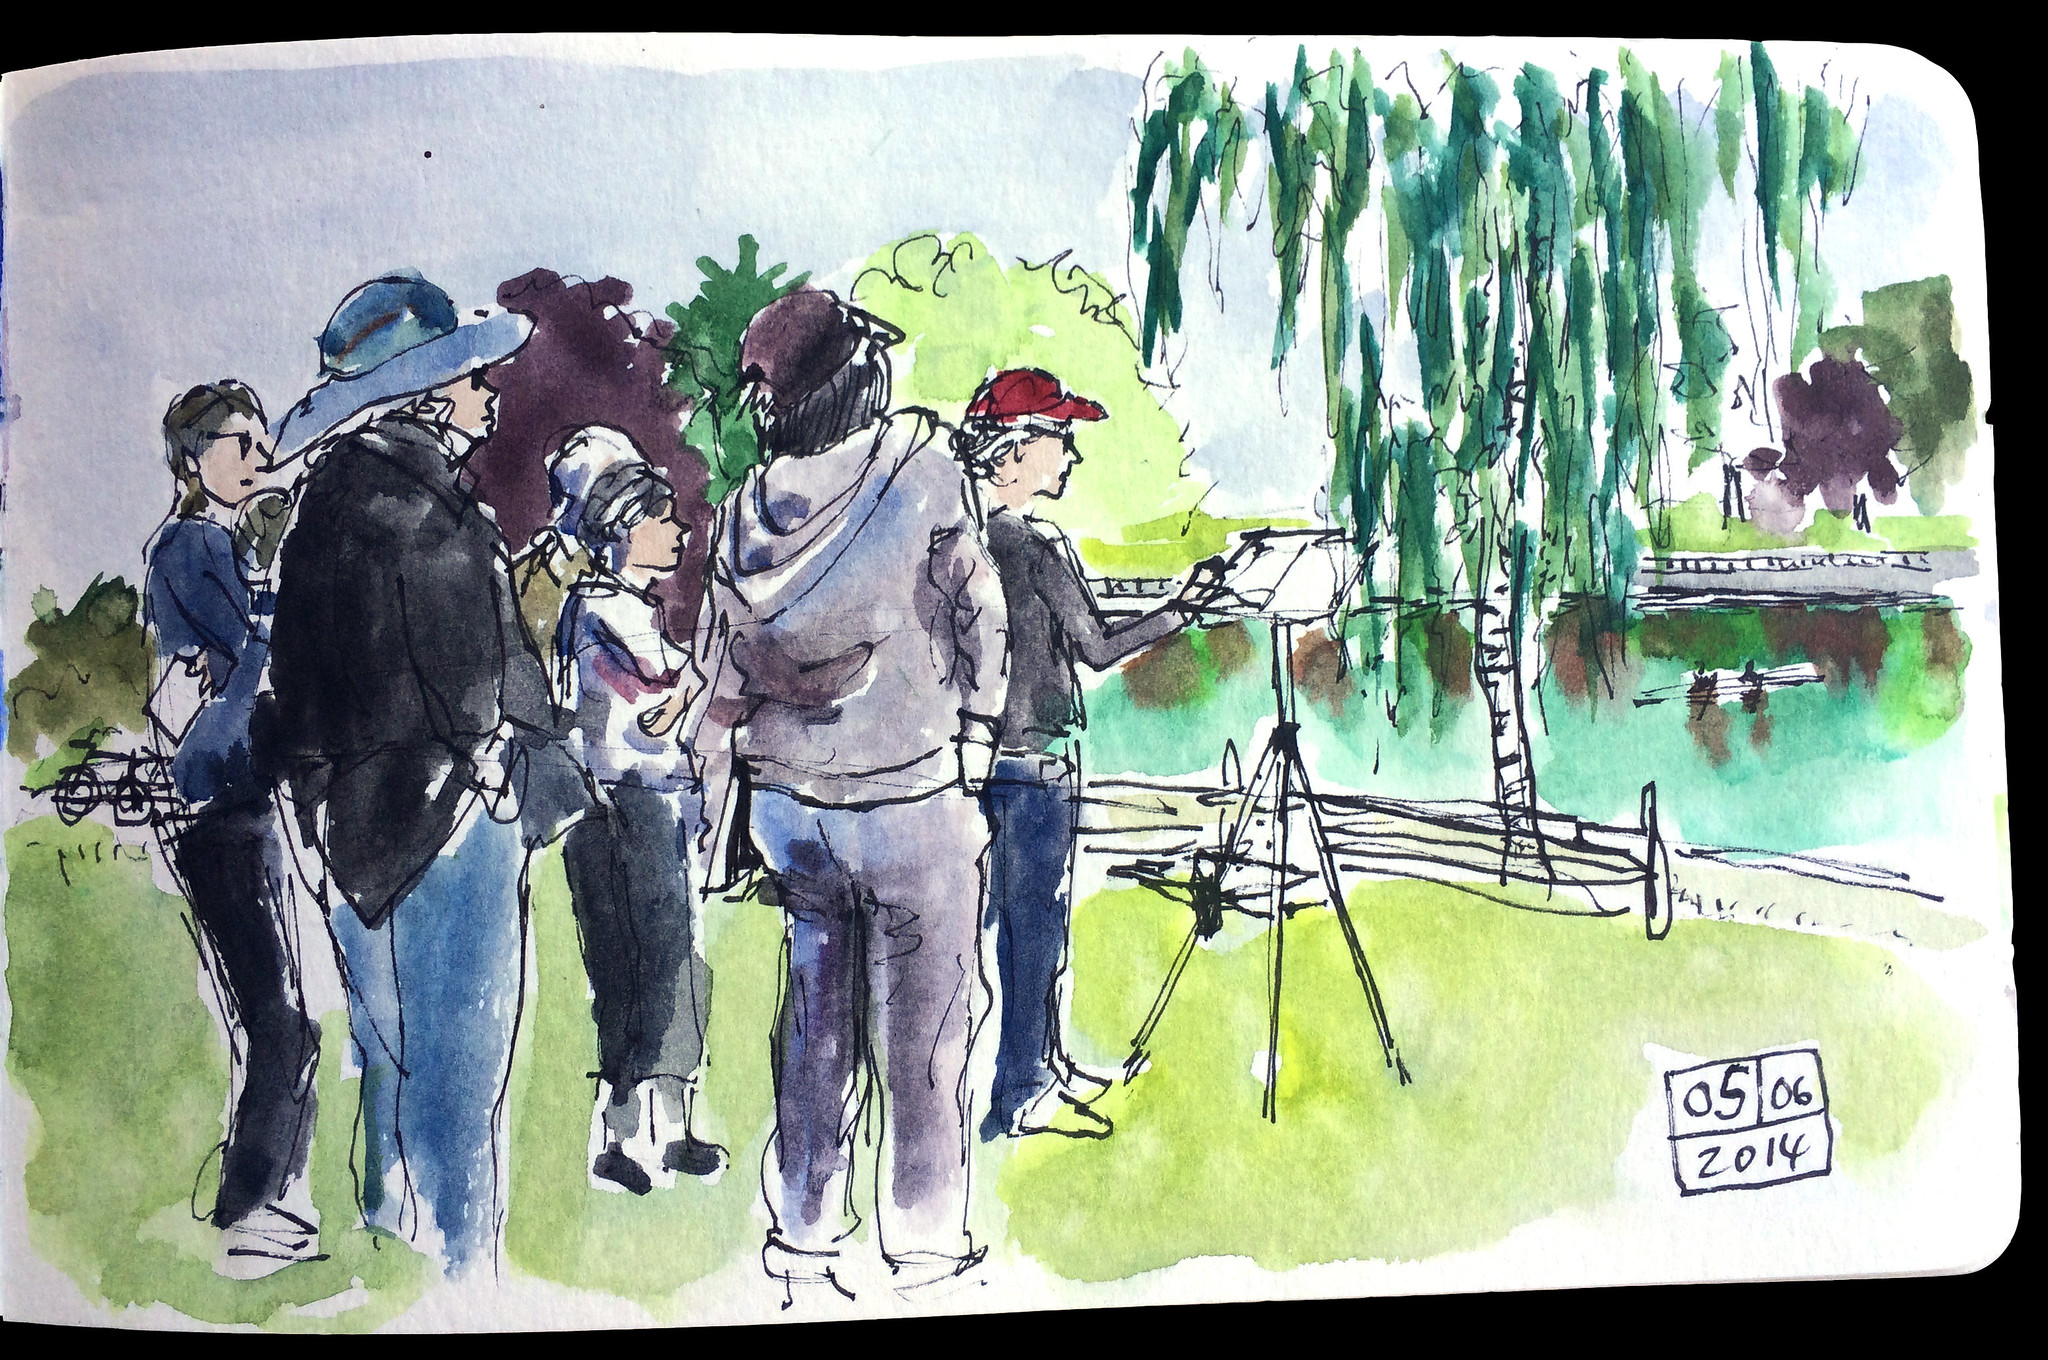 Shari Blaukopf watercolour workshop I